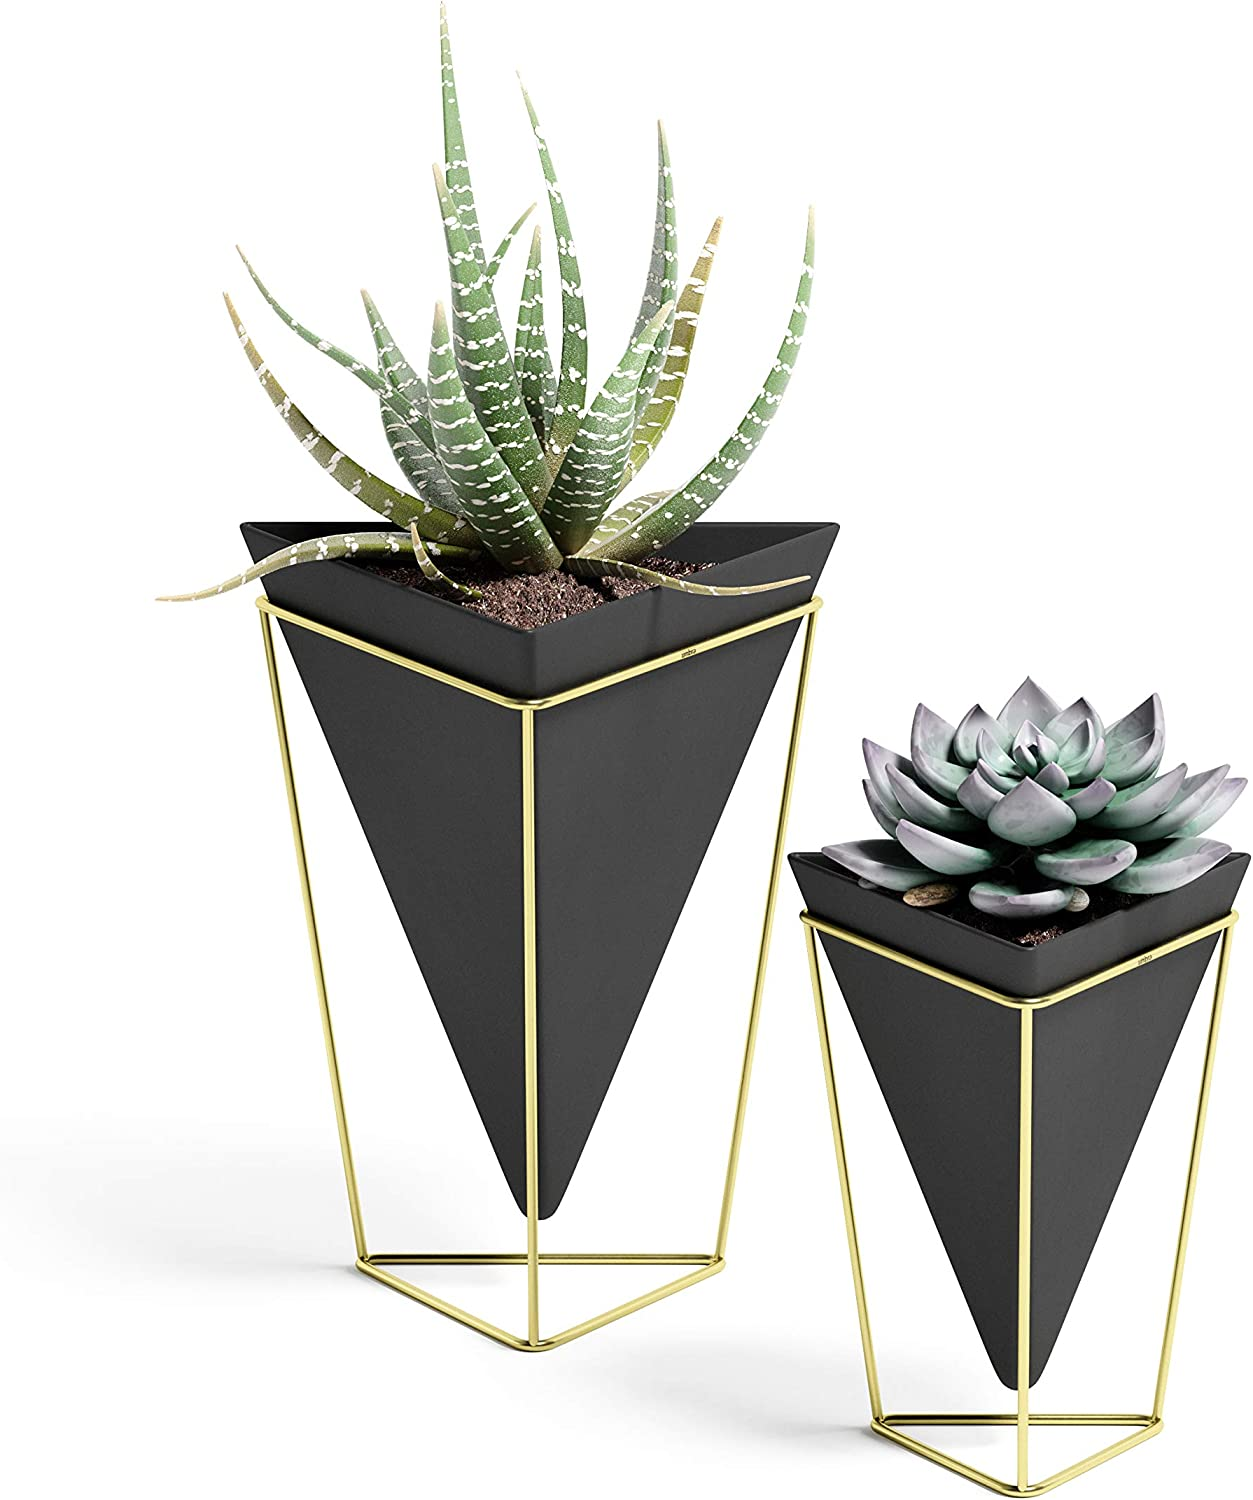 Umbra Trigg Desktop Planter Vase & Geometric Container-for Succulent, Air, Mini Cactus, Faux Plants and More, Desk, Black/Brass